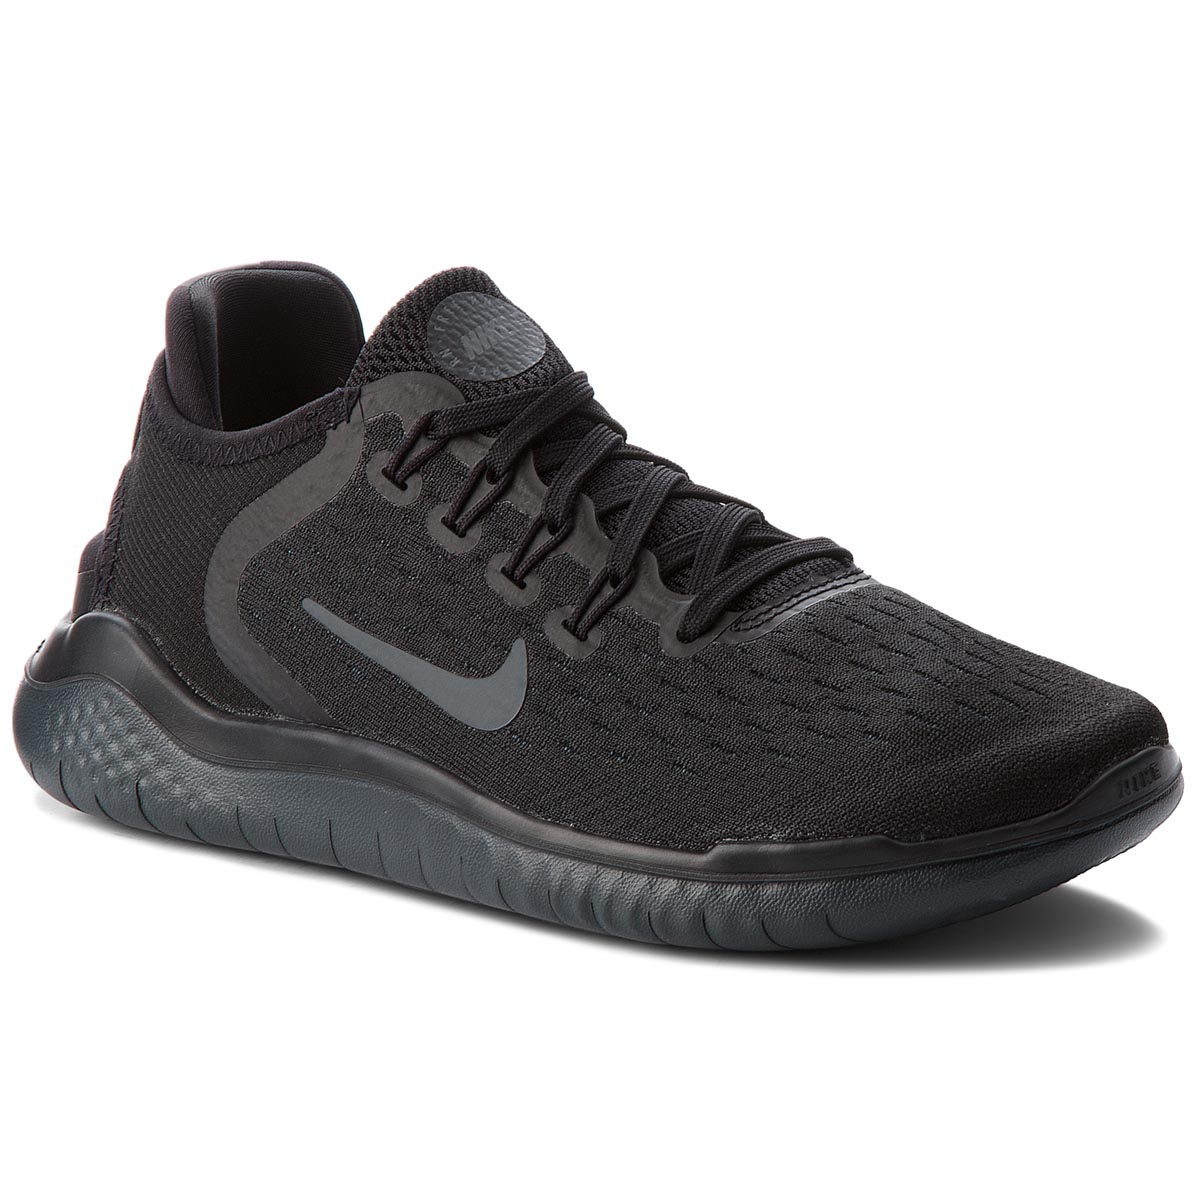 Buty NIKE - Free Rn 2018 942837 002 Black/Anthracite